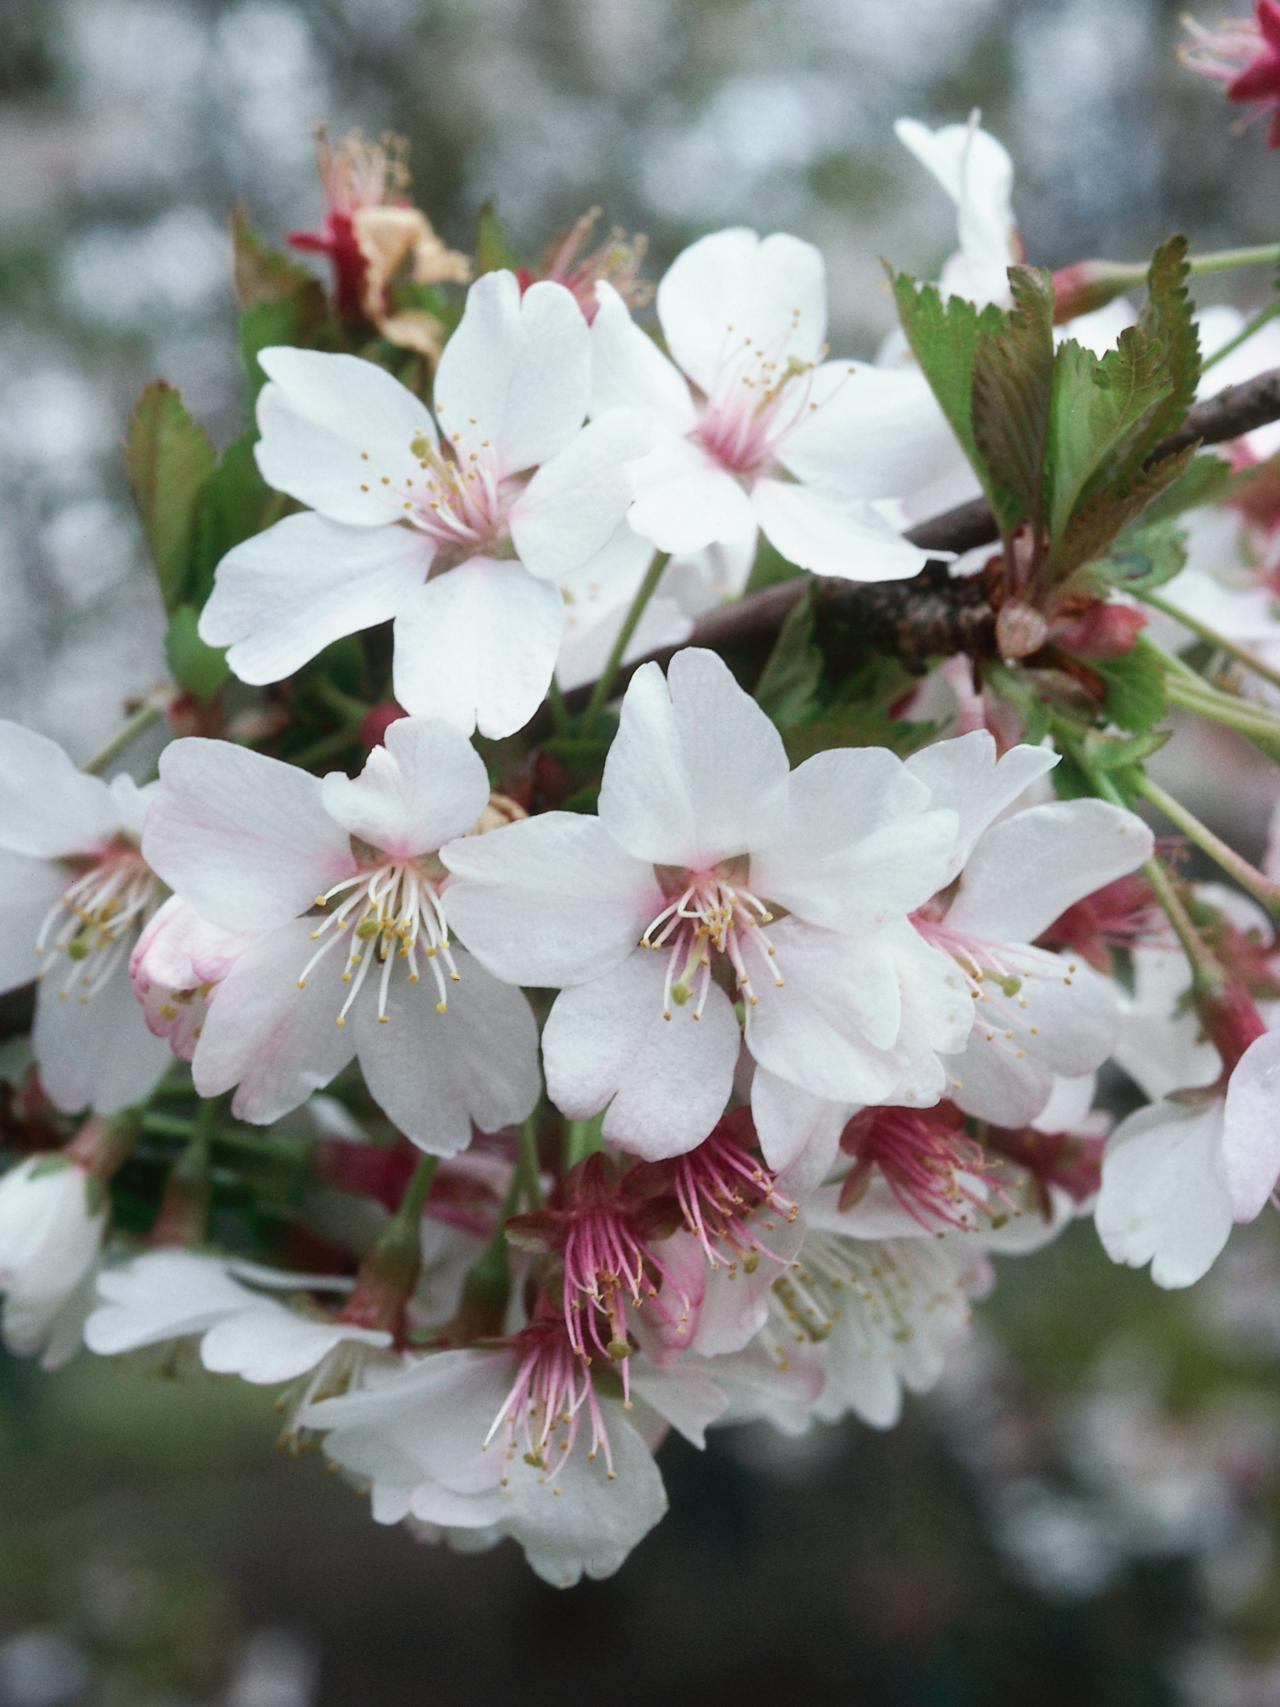 pictures of cherry trees in bloom | My Web Value